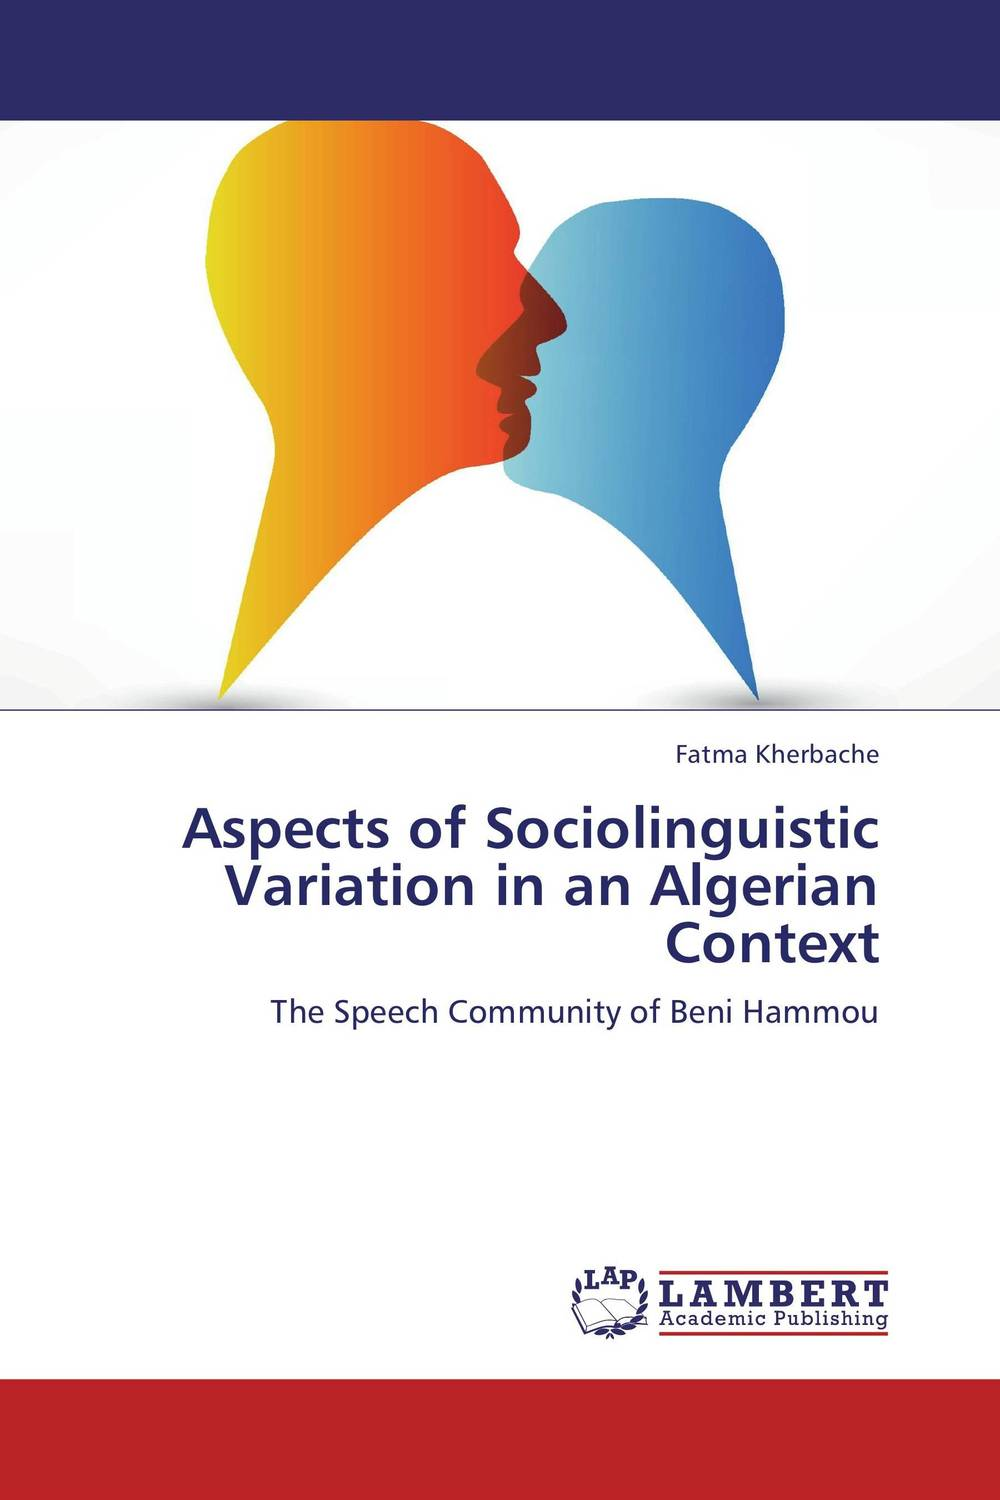 Aspects of Sociolinguistic Variation in an Algerian Context linguistic variation in a multilingual setting